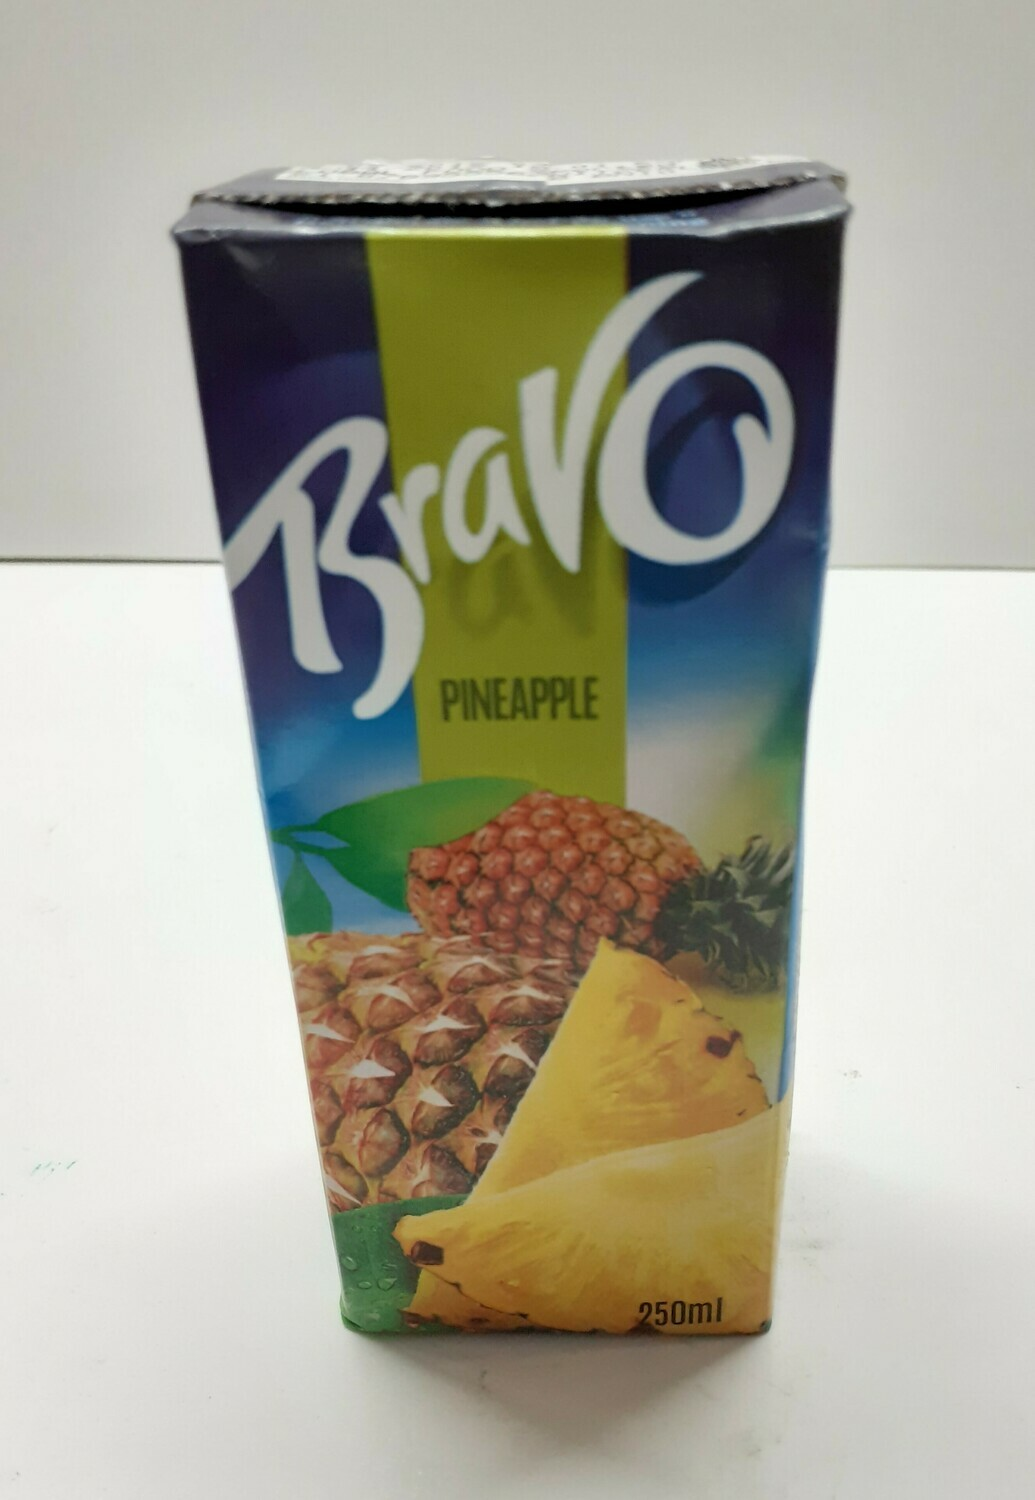 Pineapple BRAVO 250 ml